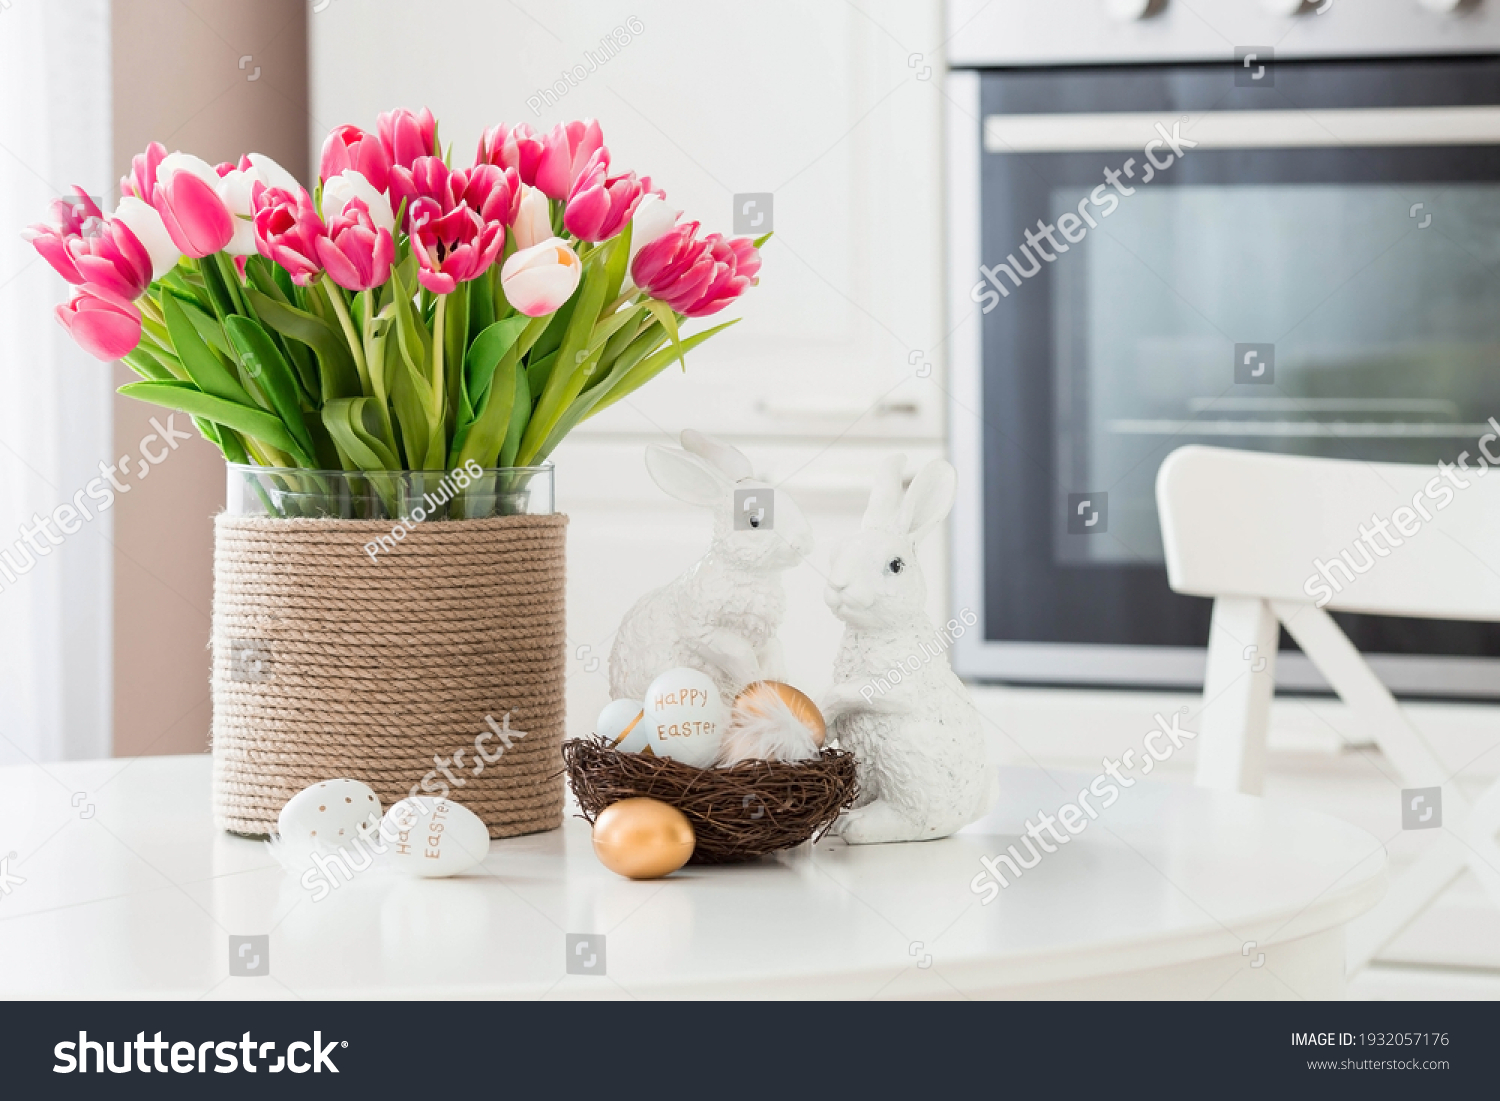 A bouquet of tulips, Easter bunnies and eggs with a golden pattern on the table. In the background is a white Scandinavian-style kitchen. Beautiful greeting card. The minimal concept. #1932057176